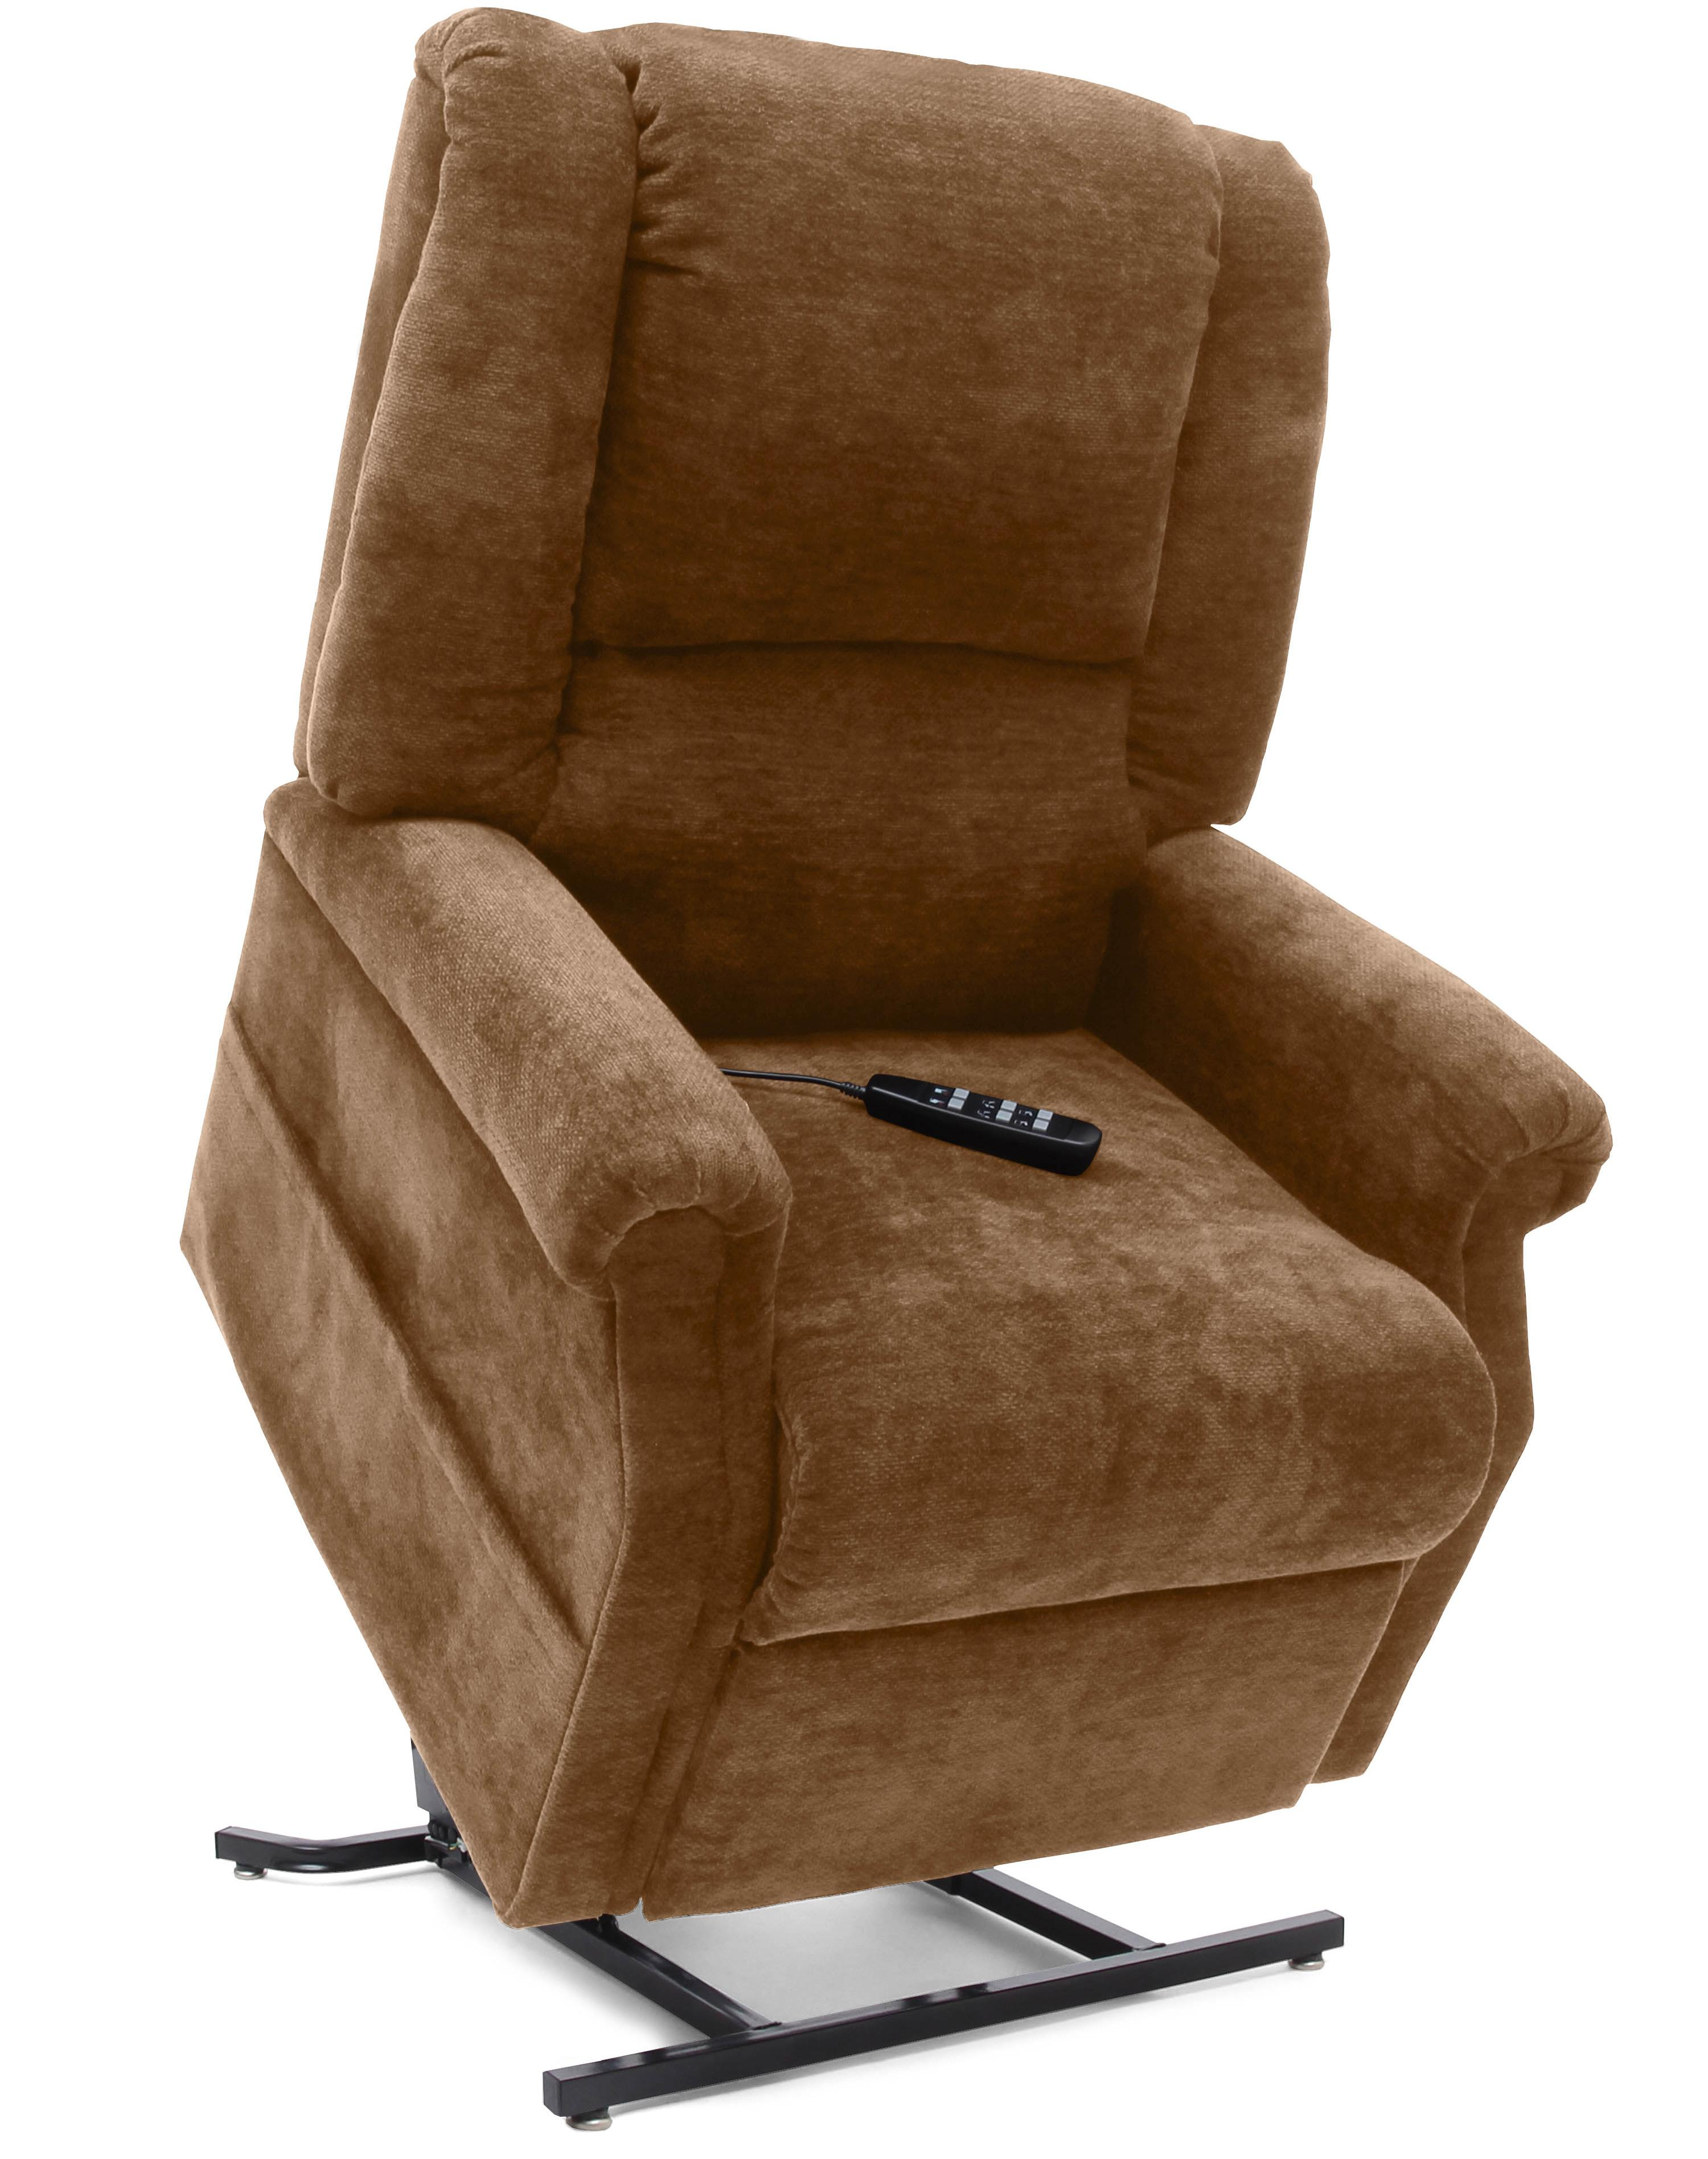 Windermere Motion Lift Chairs Infinite Position Lift Recliner - Item Number: FC-101 Tumbleweed